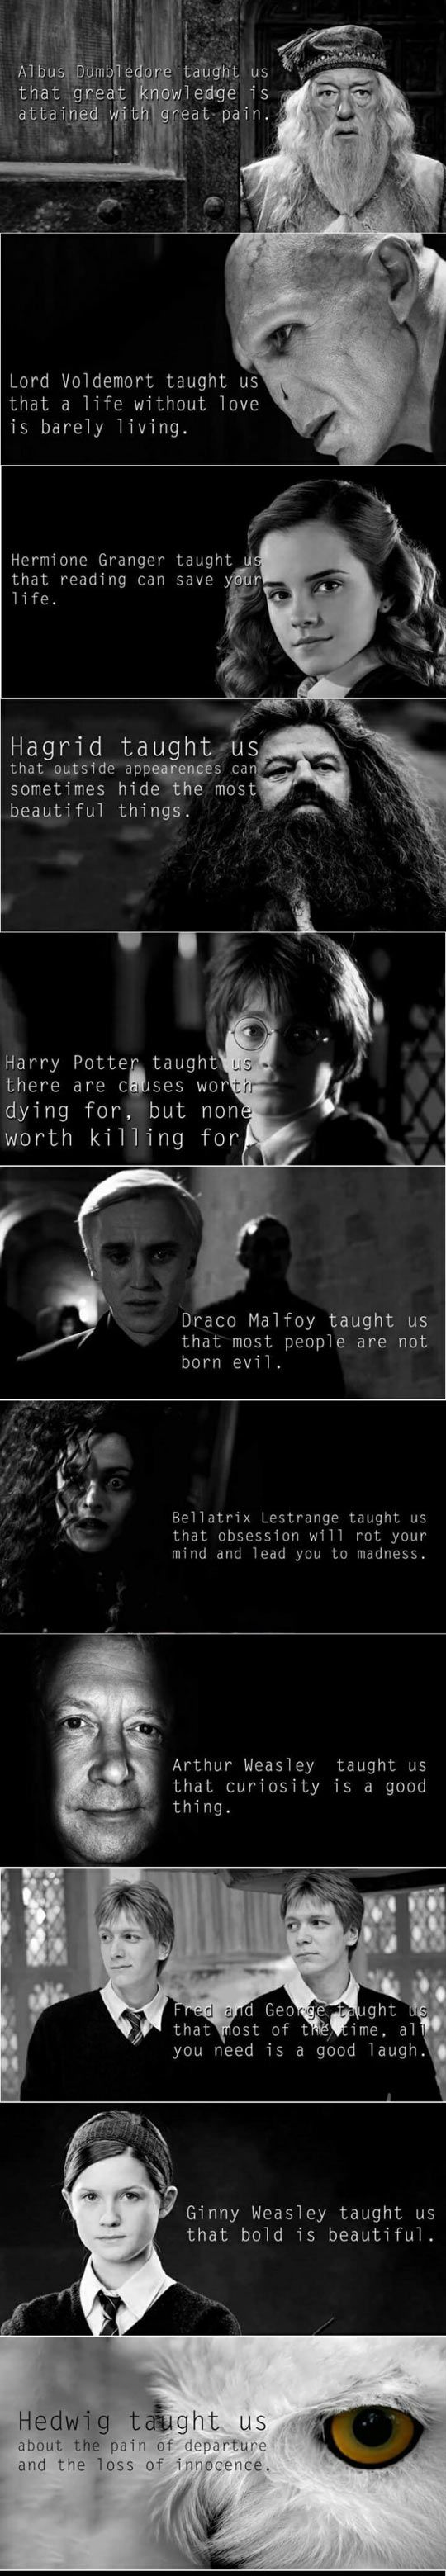 "The Moral Of Harry Potter --> Open to see all. The only one I disagree with is Lupin. It should read ""Prejudice about something that is misunderstood will lead you nowhere, but kindness and compassion to everyone will create love."""